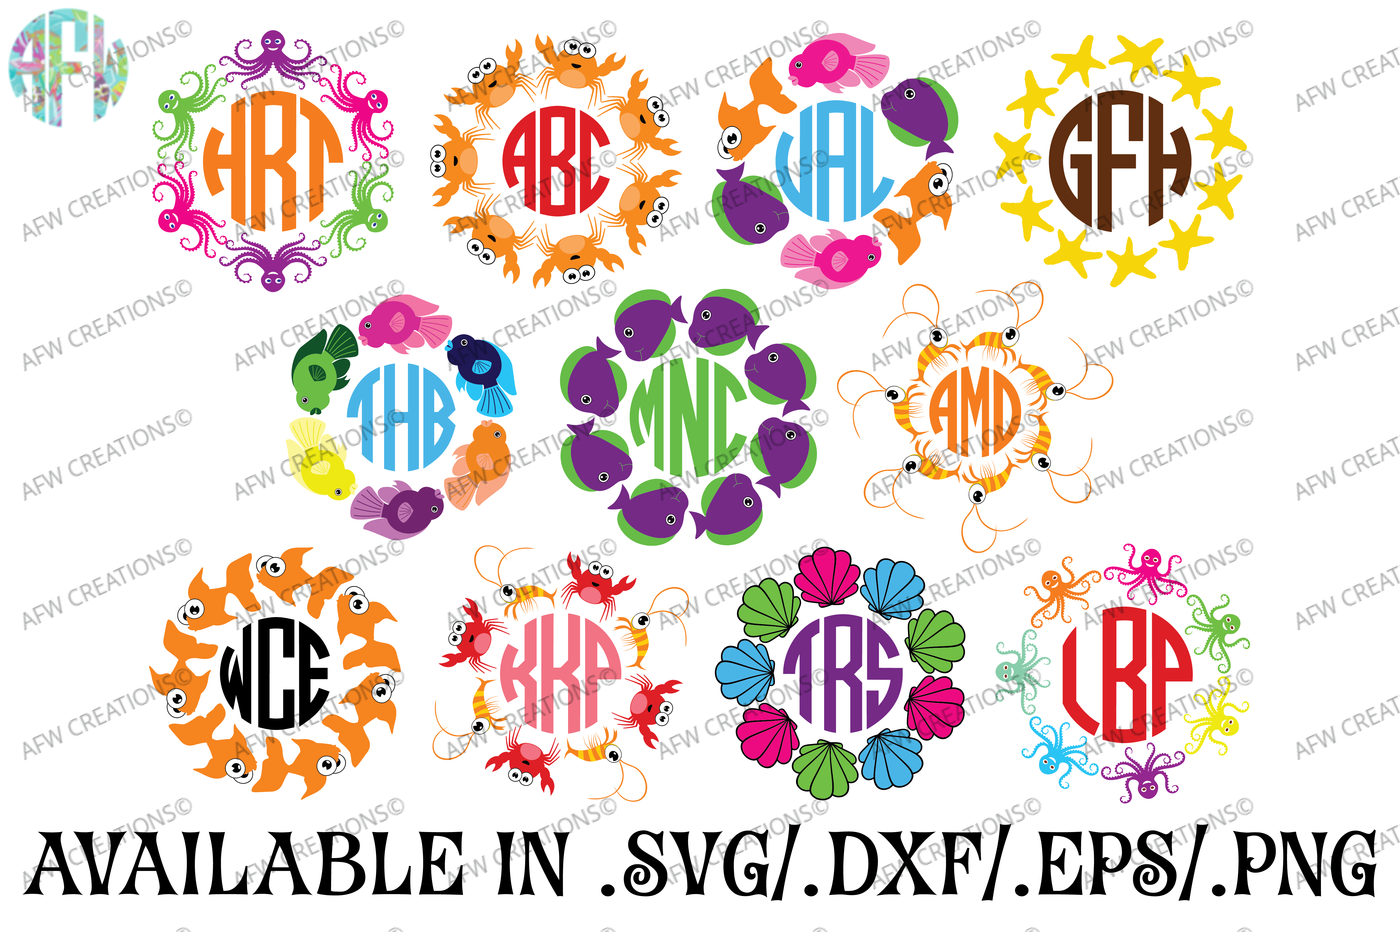 Tropical Monograms Svg Dxf Eps Cut Files By Afw Designs Thehungryjpeg Com